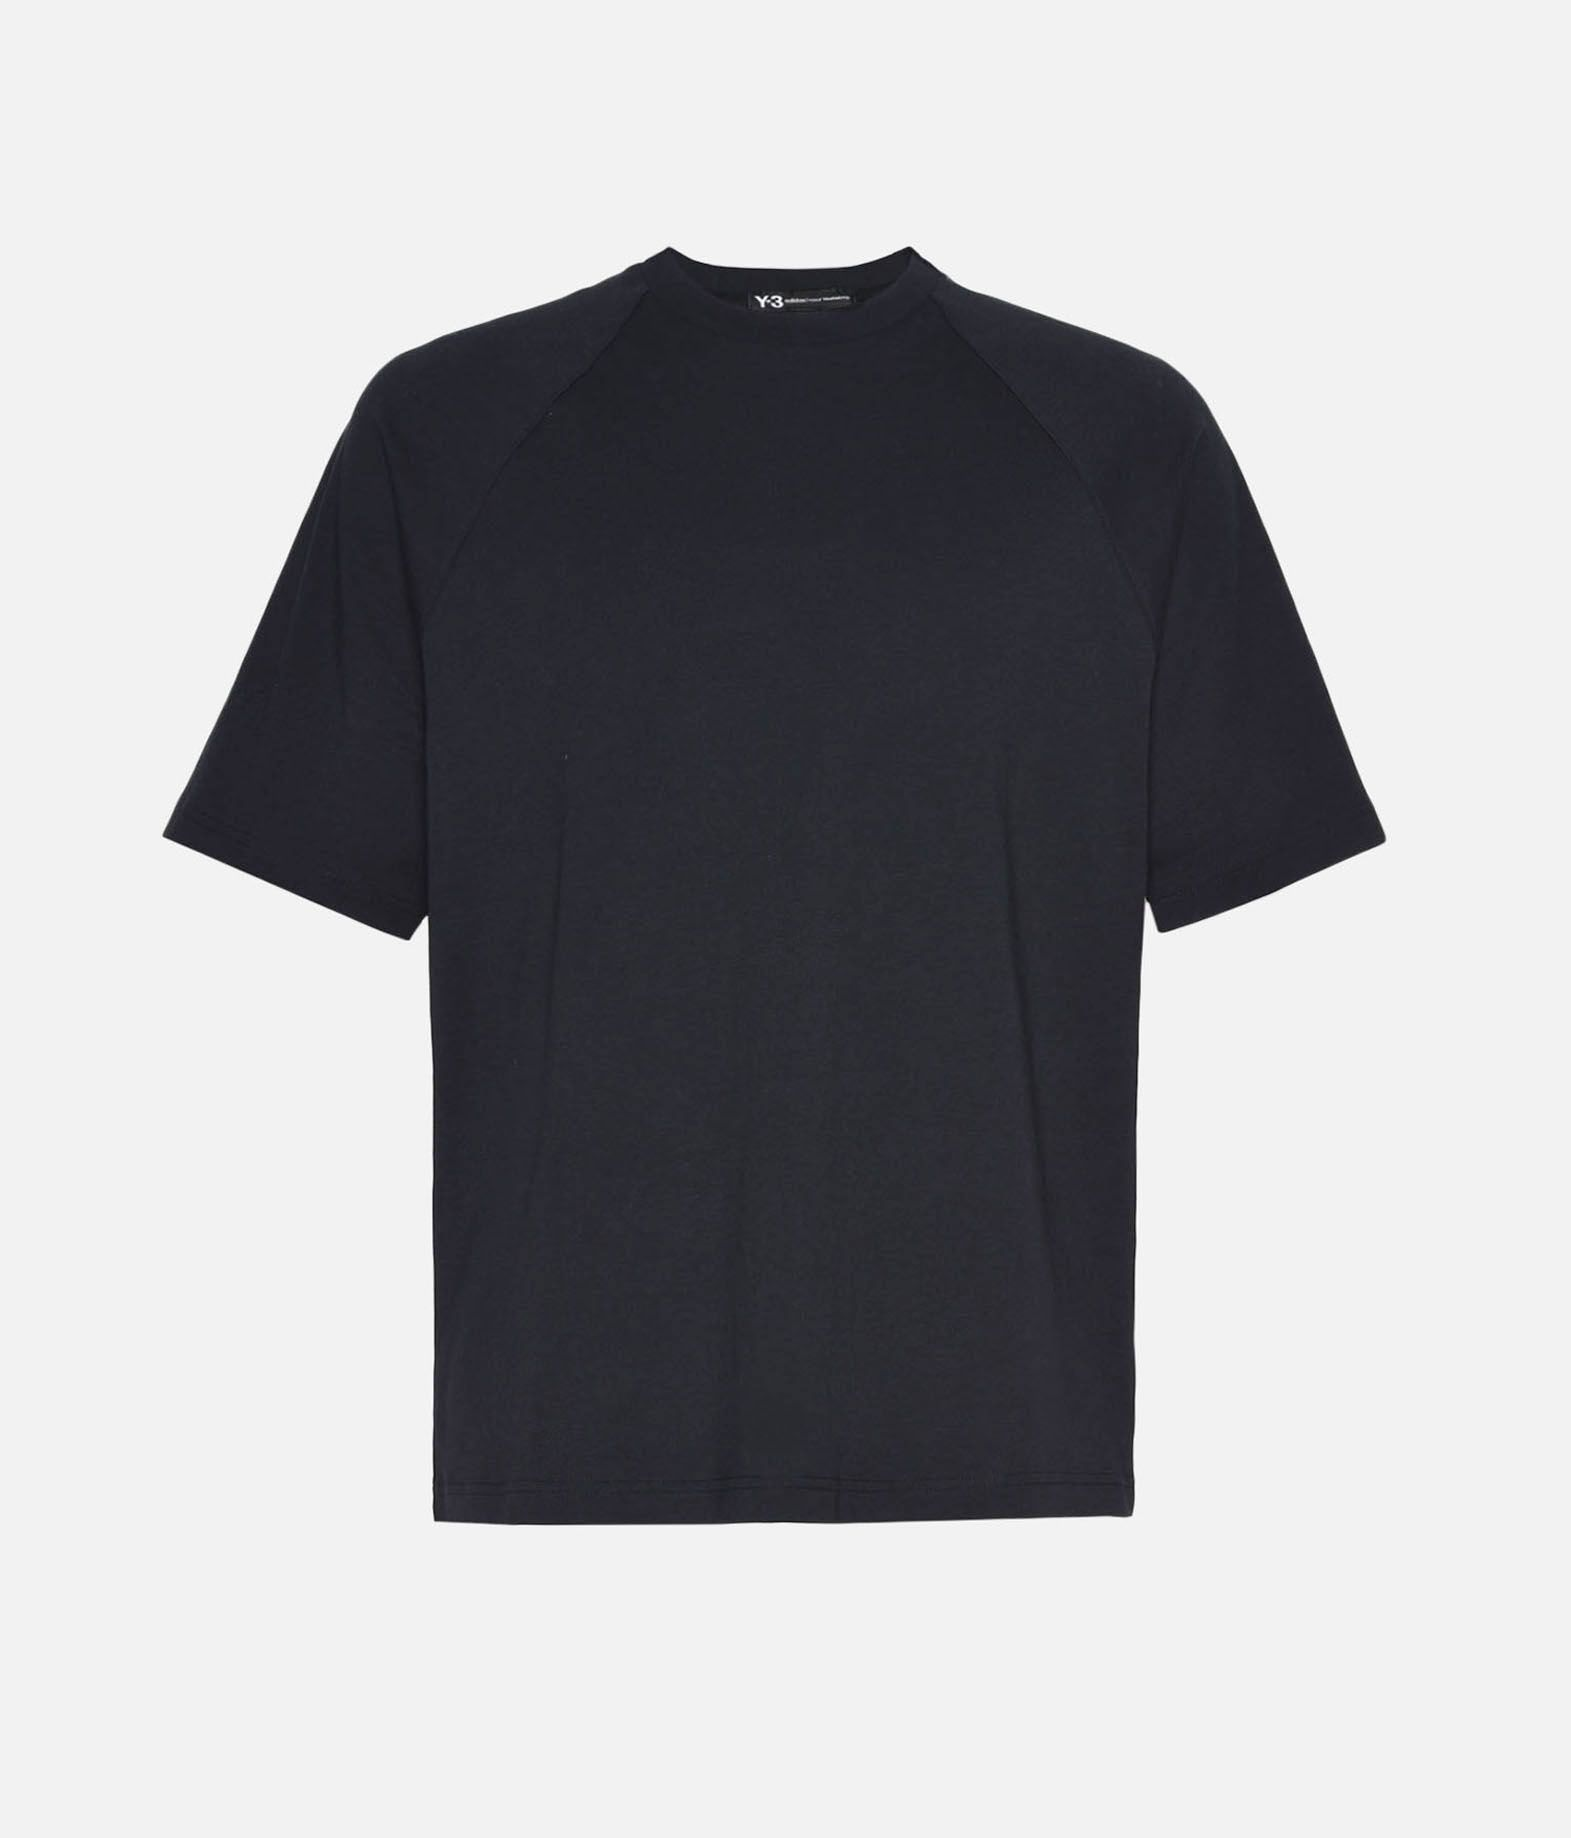 Y-3 Y-3 CLASSIC TEE Short sleeve t-shirt Man f